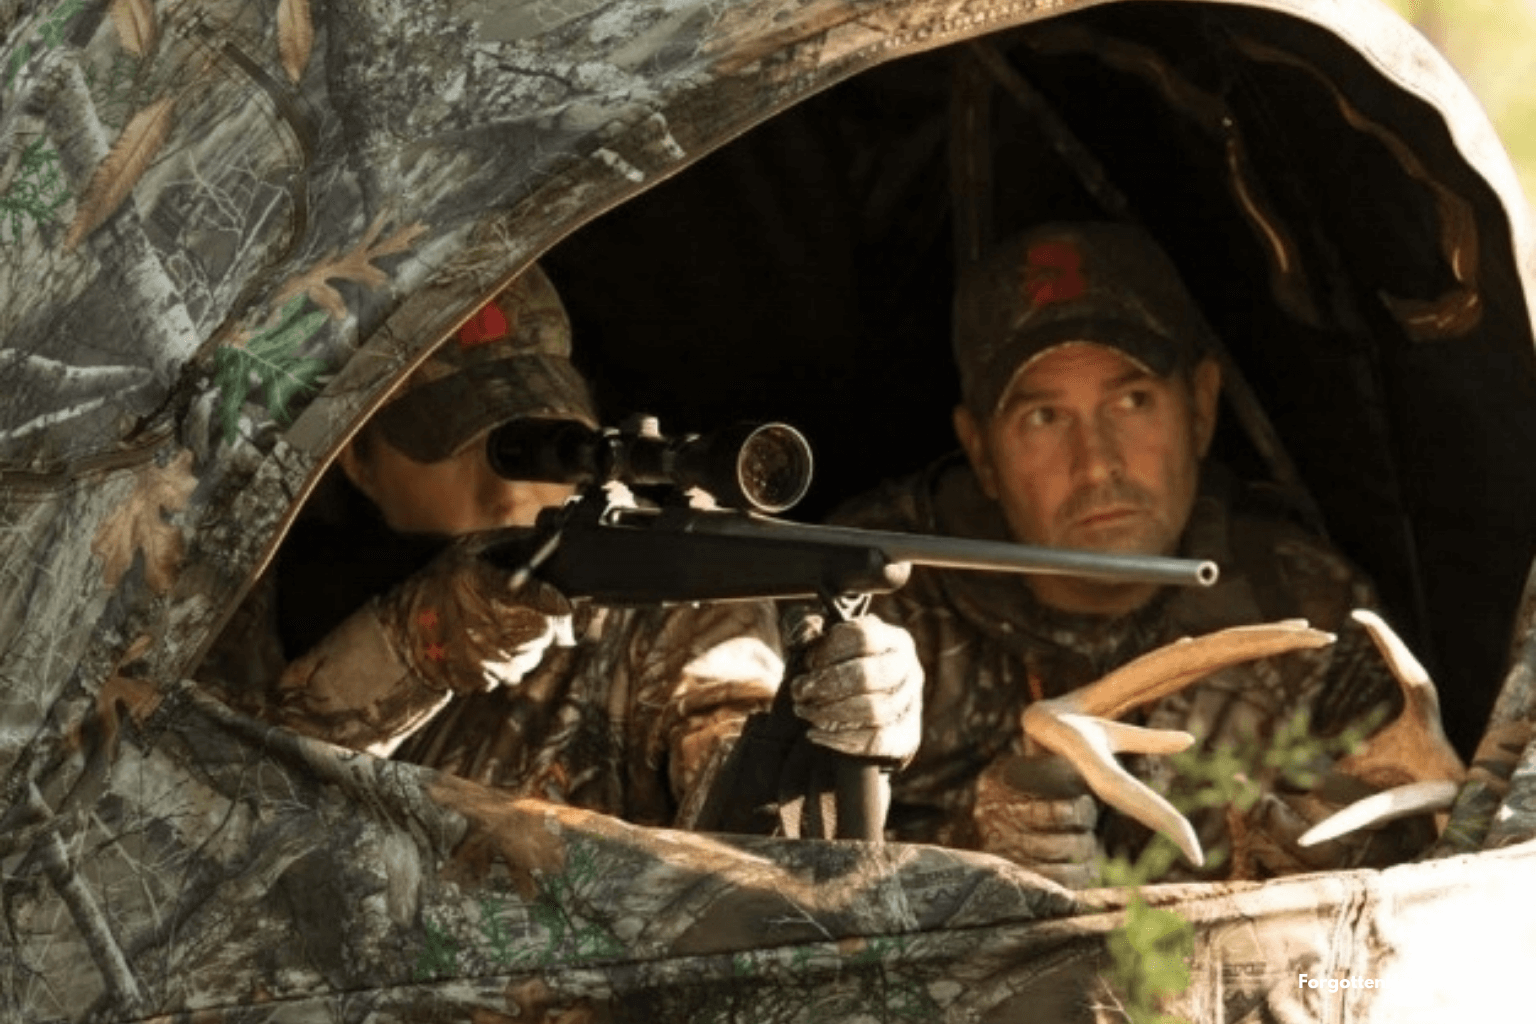 A hunting blinds is good for helping inexperienced hunters